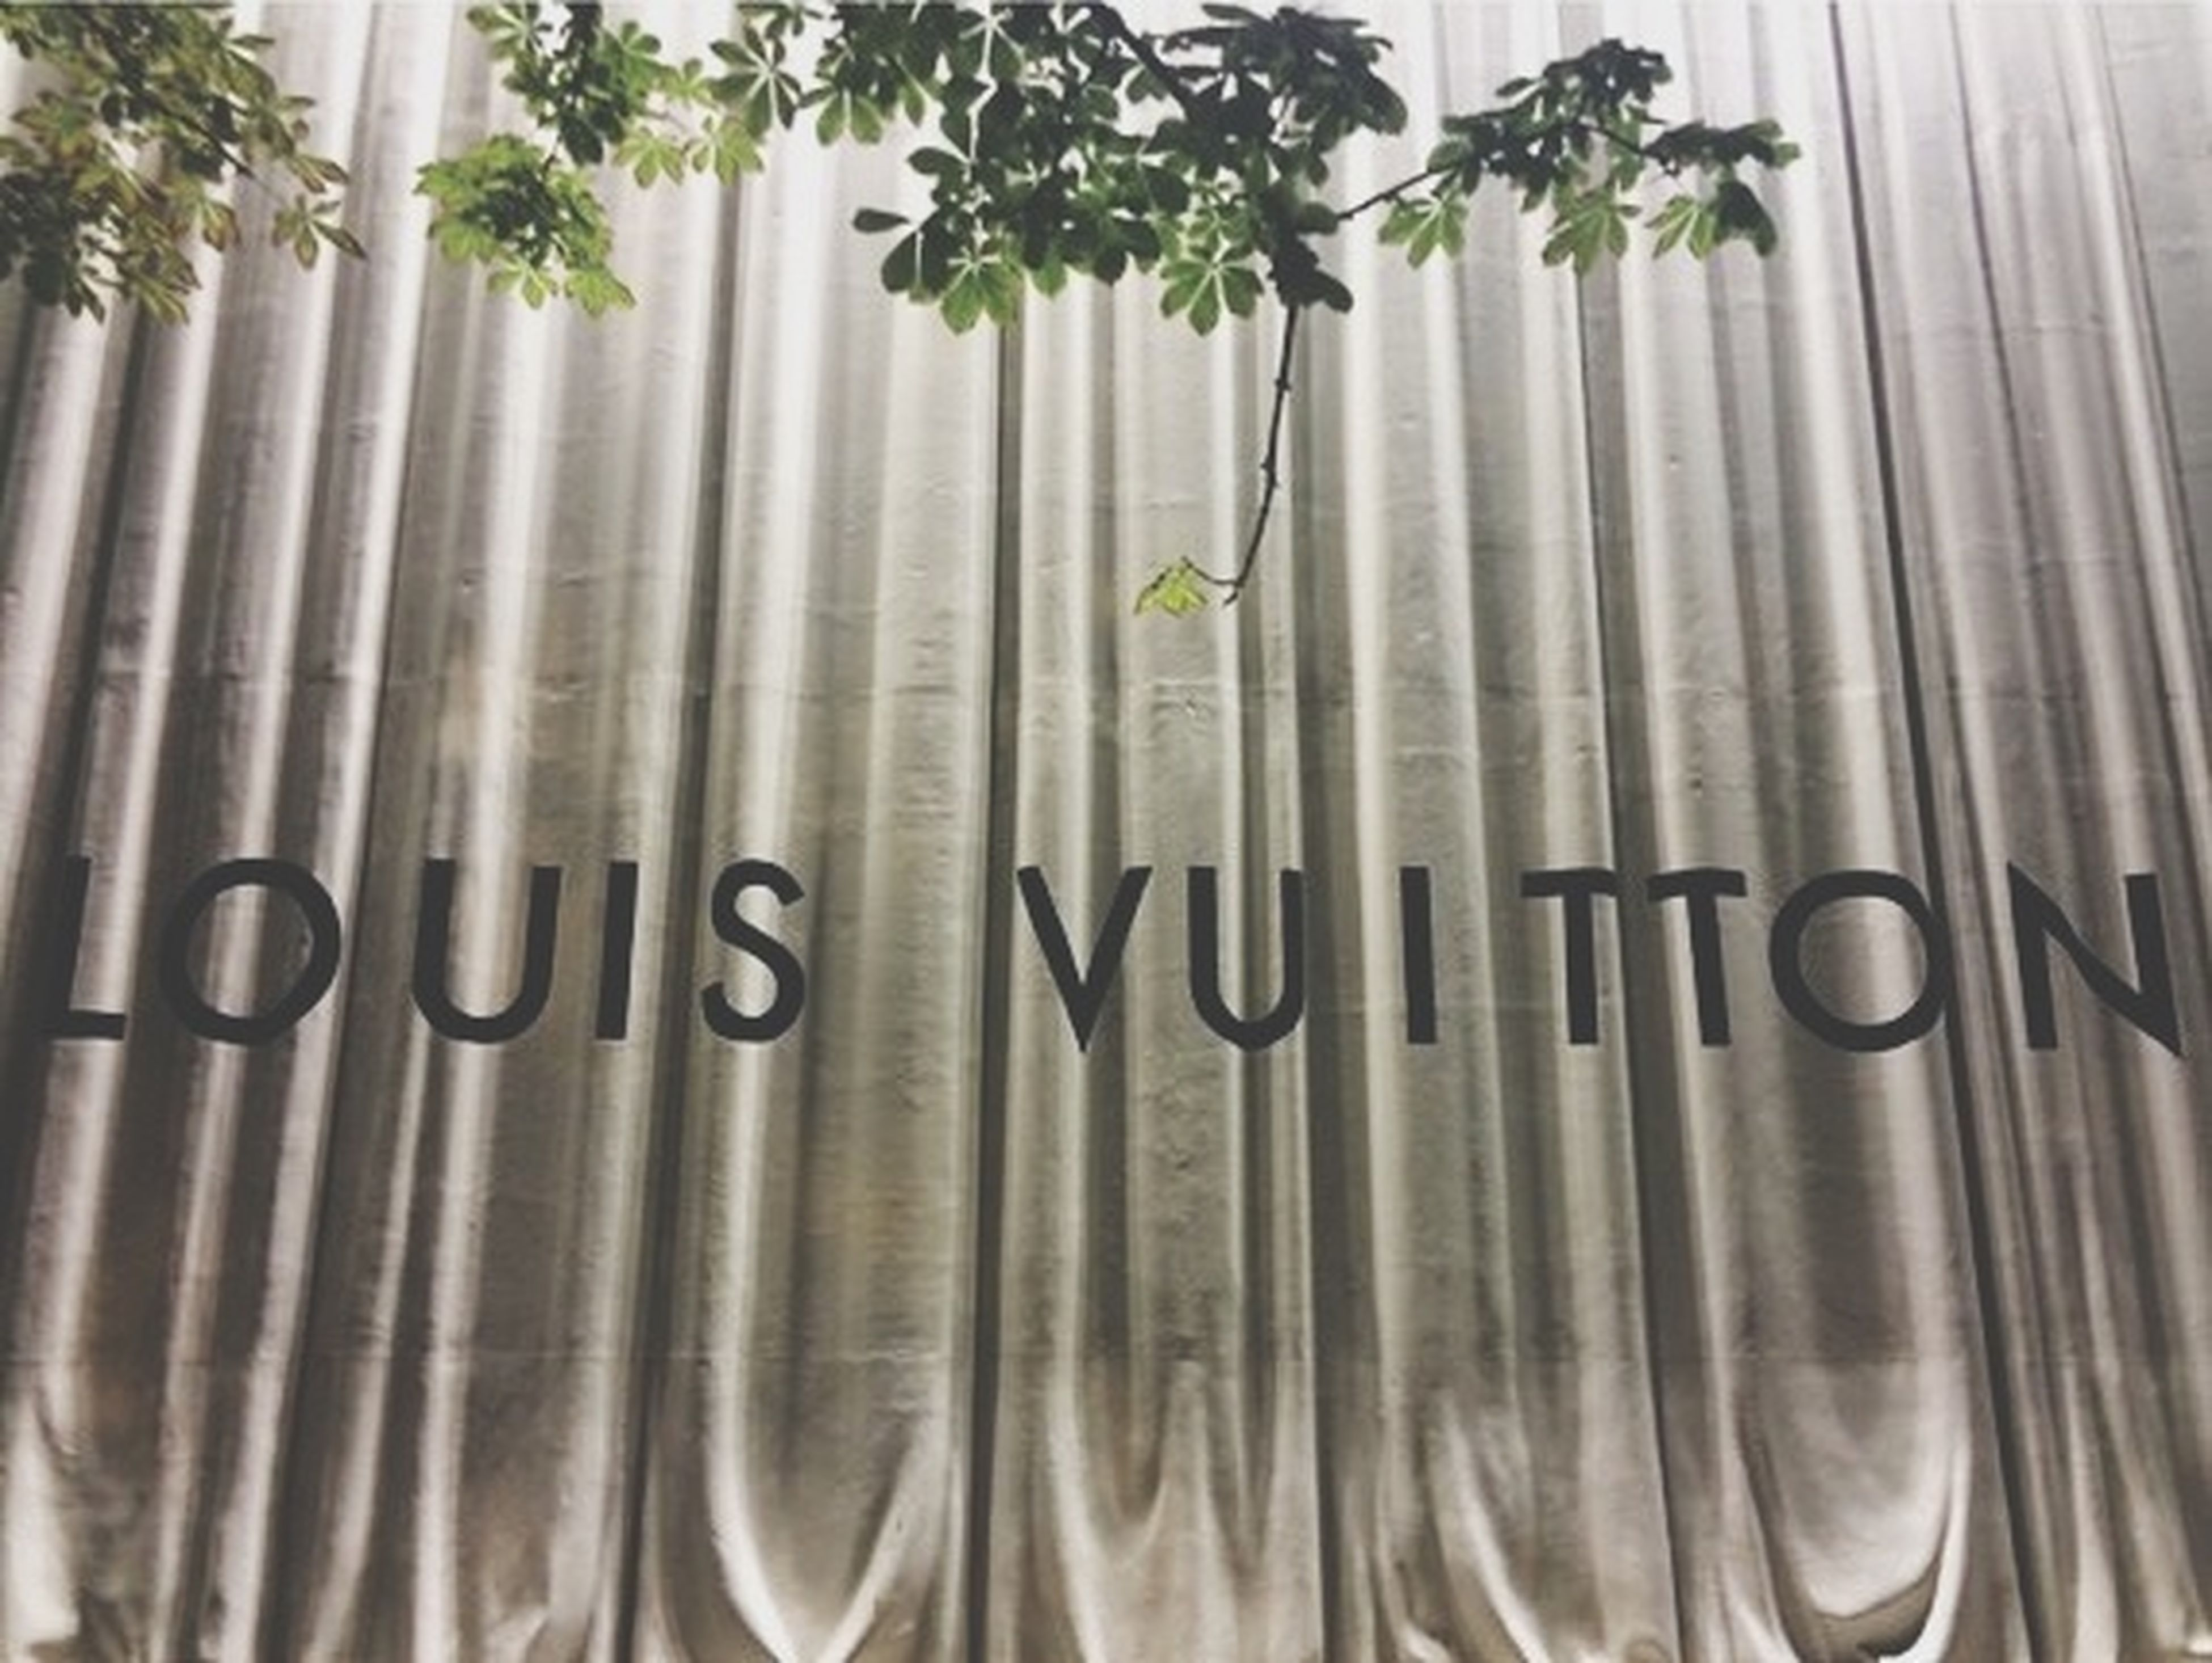 indoors, close-up, hanging, in a row, side by side, still life, no people, growth, metal, day, plant, green color, arrangement, repetition, large group of objects, curtain, order, white color, abundance, glass - material